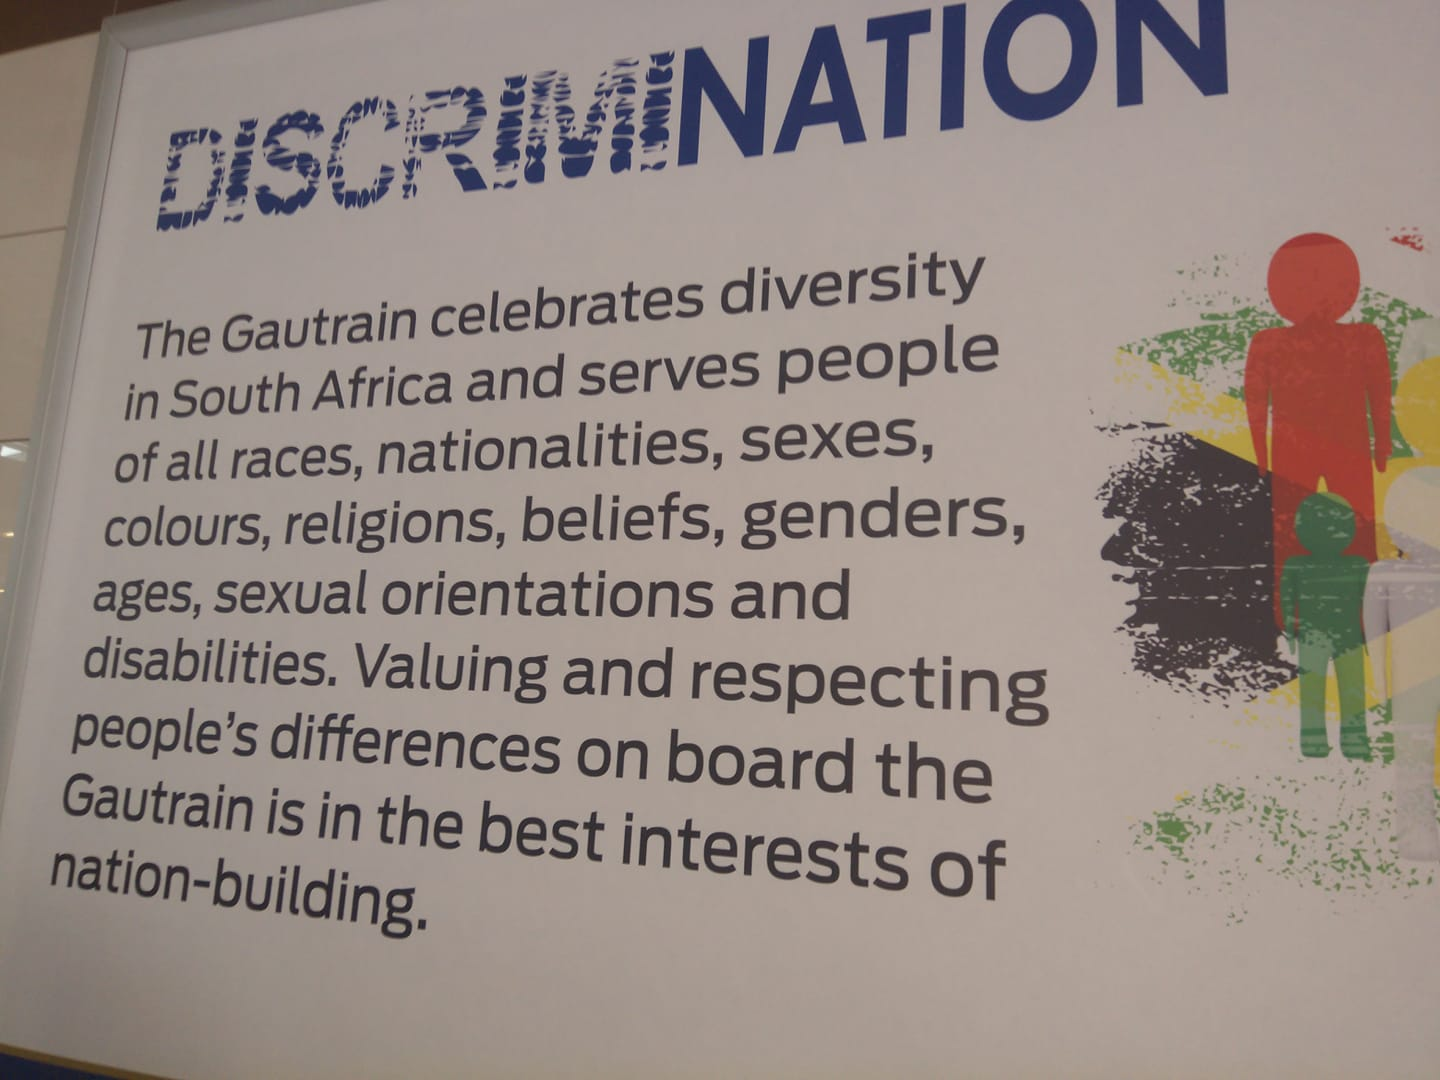 Religious discrimination based on gender and sexual orientation